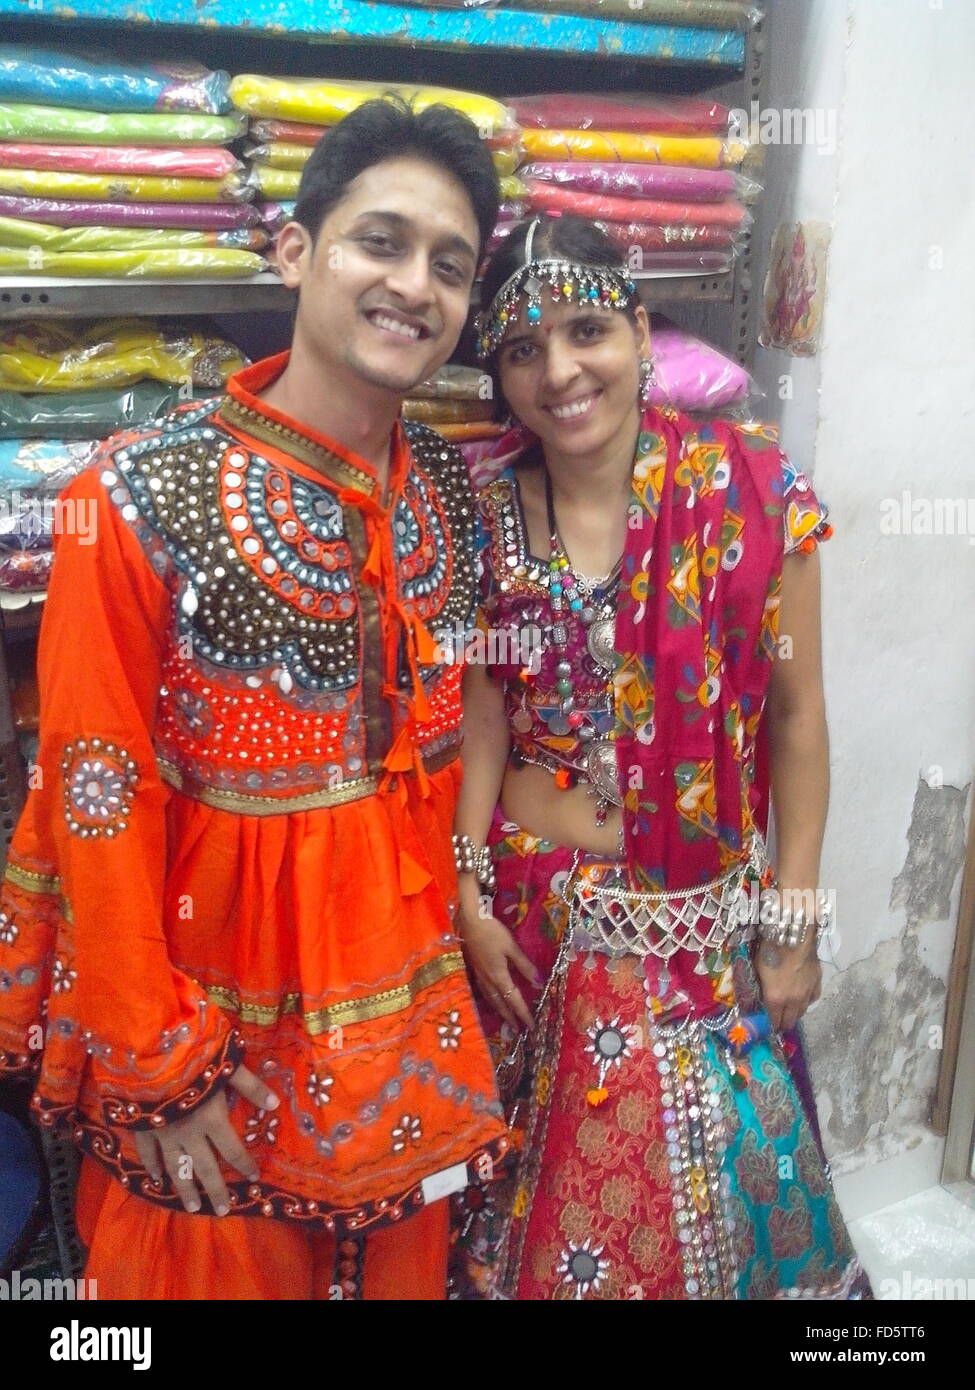 Portrait Of Happy Young Couple Wearing Traditional Clothe While Standing In Shop - Stock Image